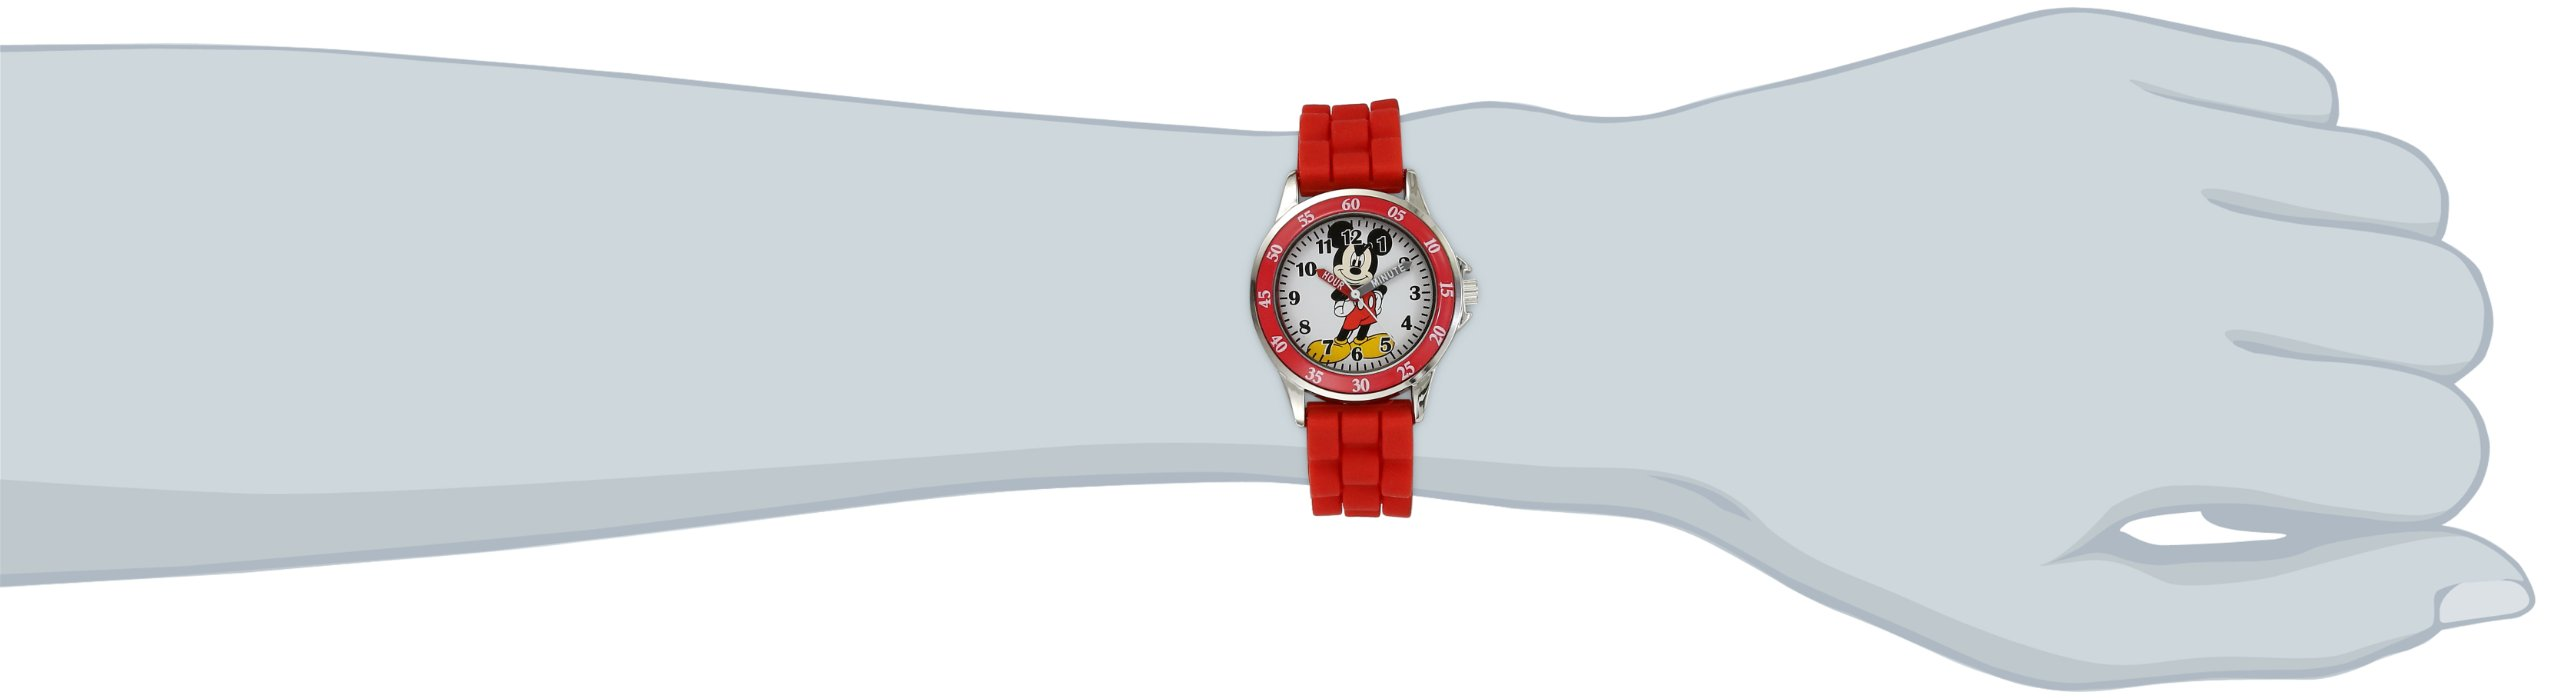 Disney Kids' MK1239 Time Teacher Mickey Mouse Watch with Red Rubber Strap by Disney (Image #2)